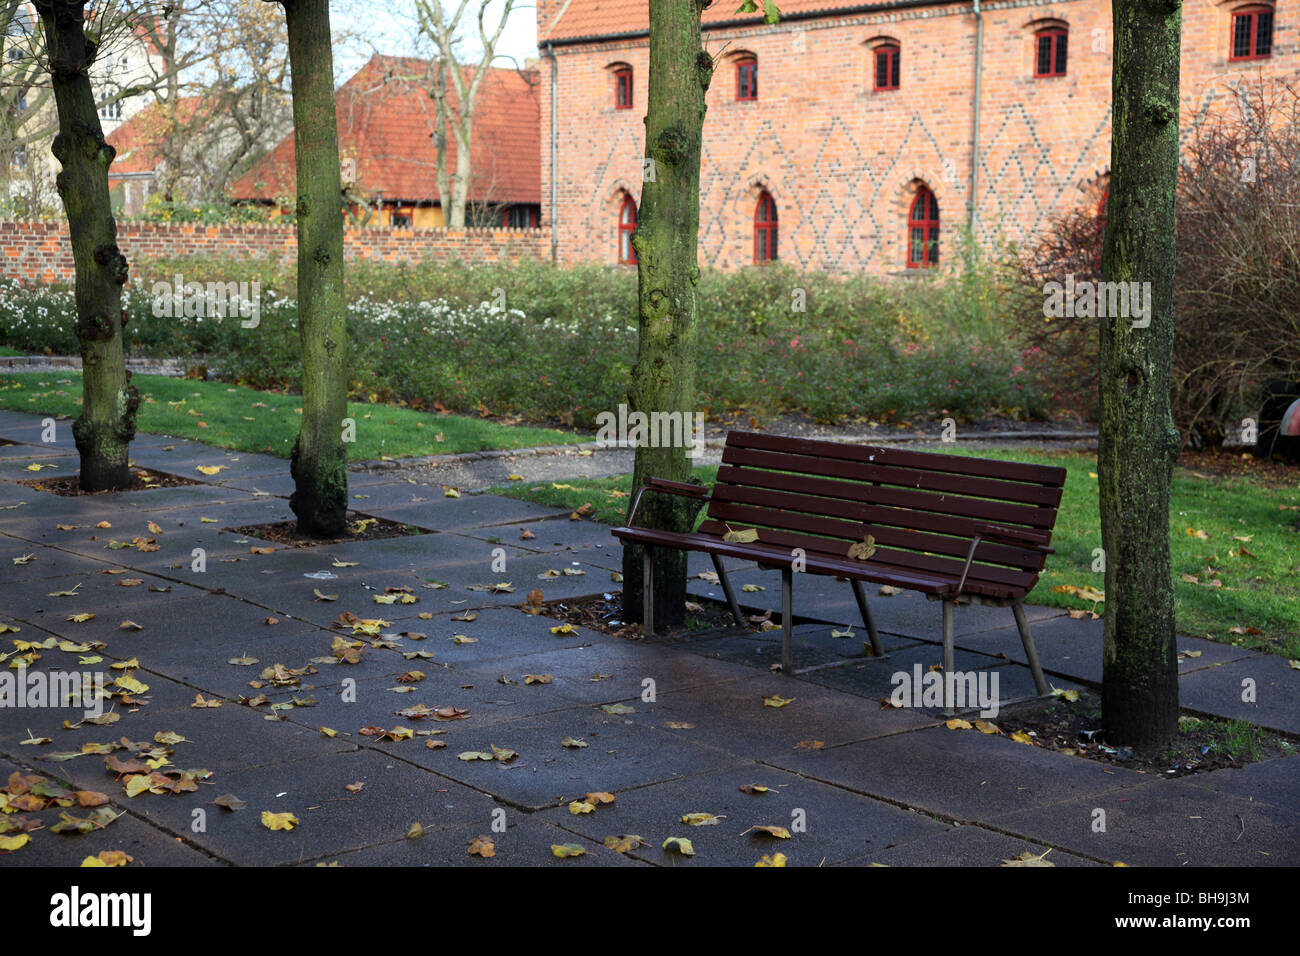 bench in park near cloister - Stock Image